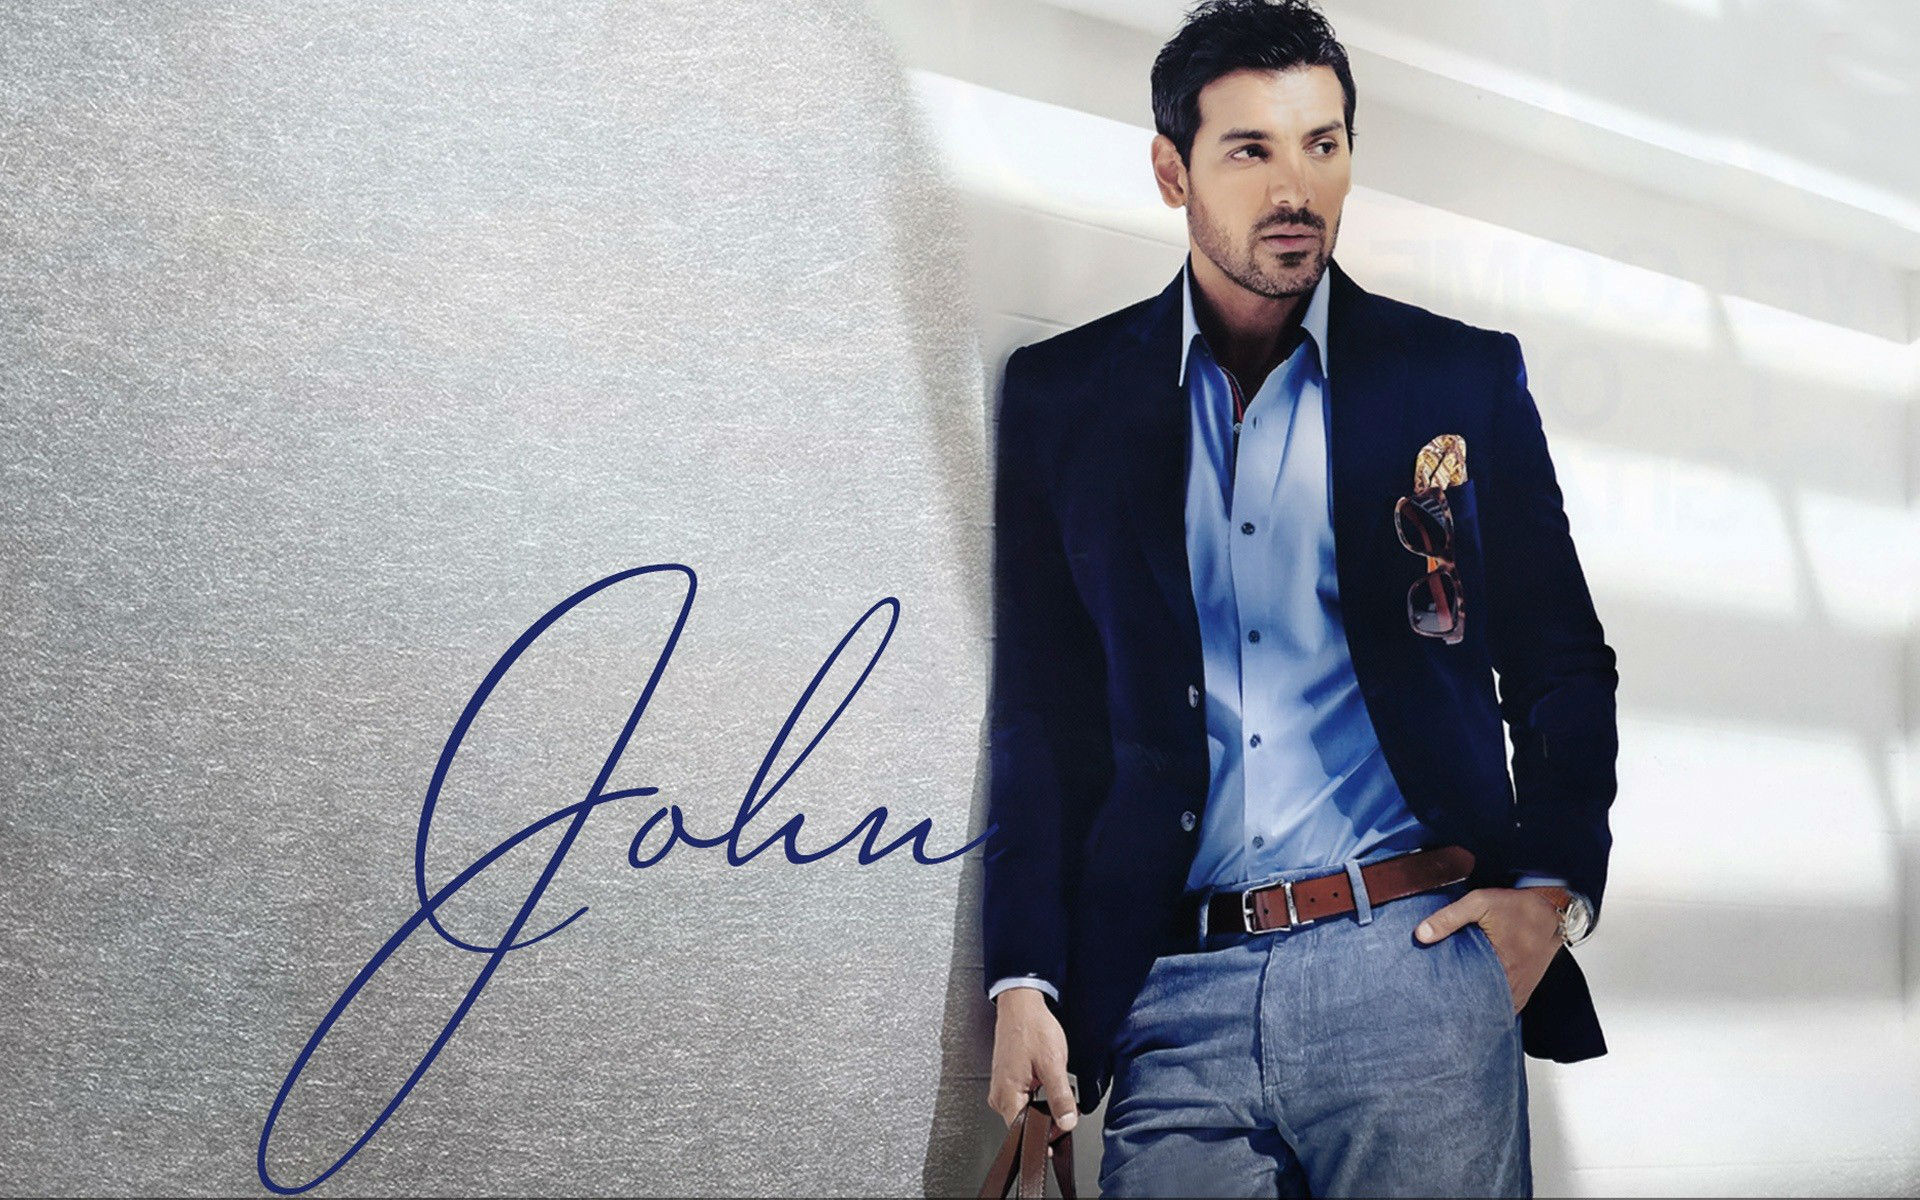 John Abraham Wallpapers High Resolution And Quality Download